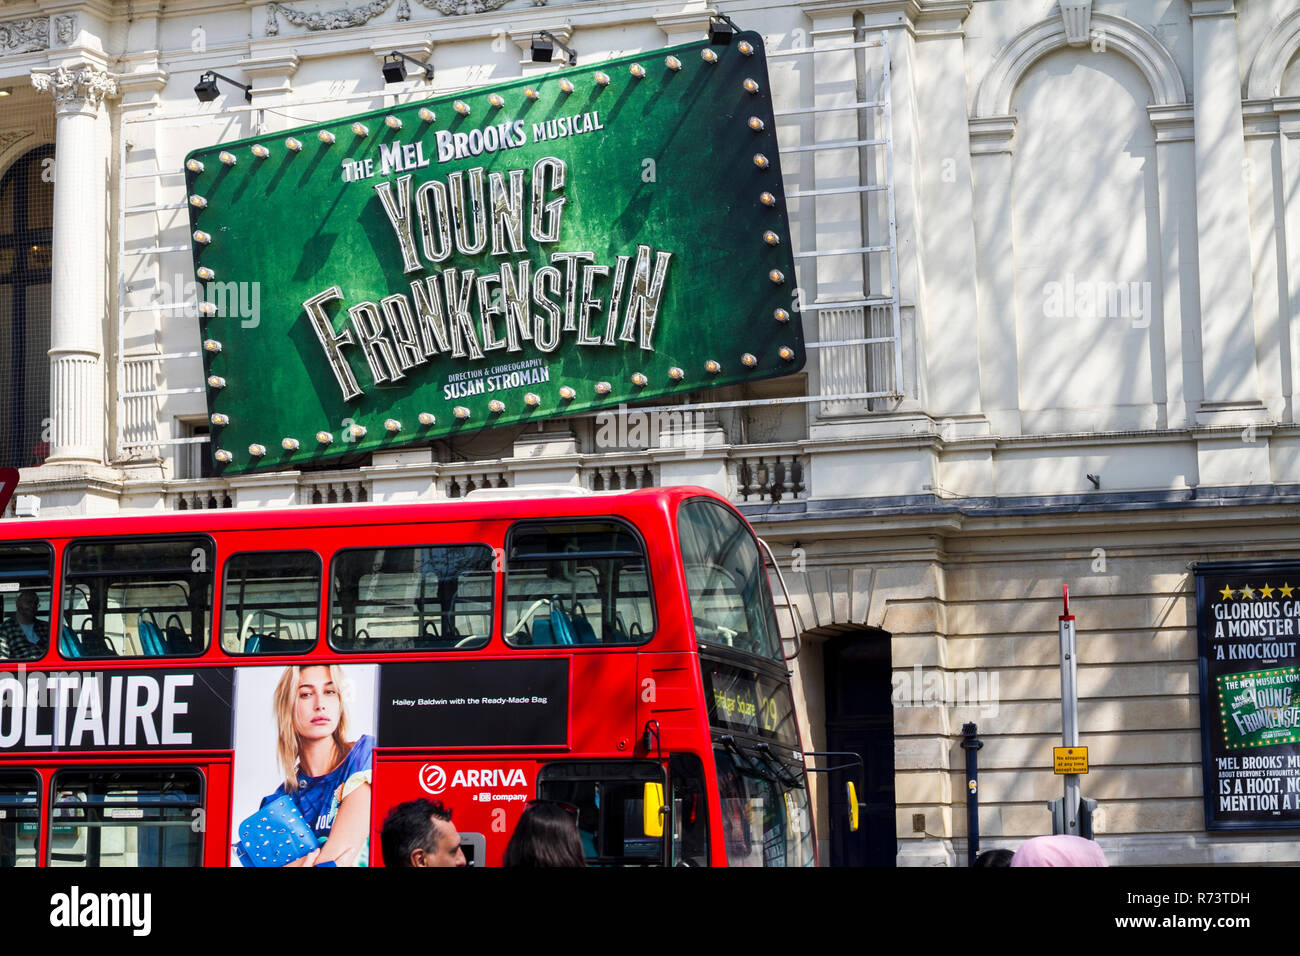 Londons Westend noticeboard billboard typically british concept red bus london postcard young frankenstein musical theatre plays travel visiting londo - Stock Image